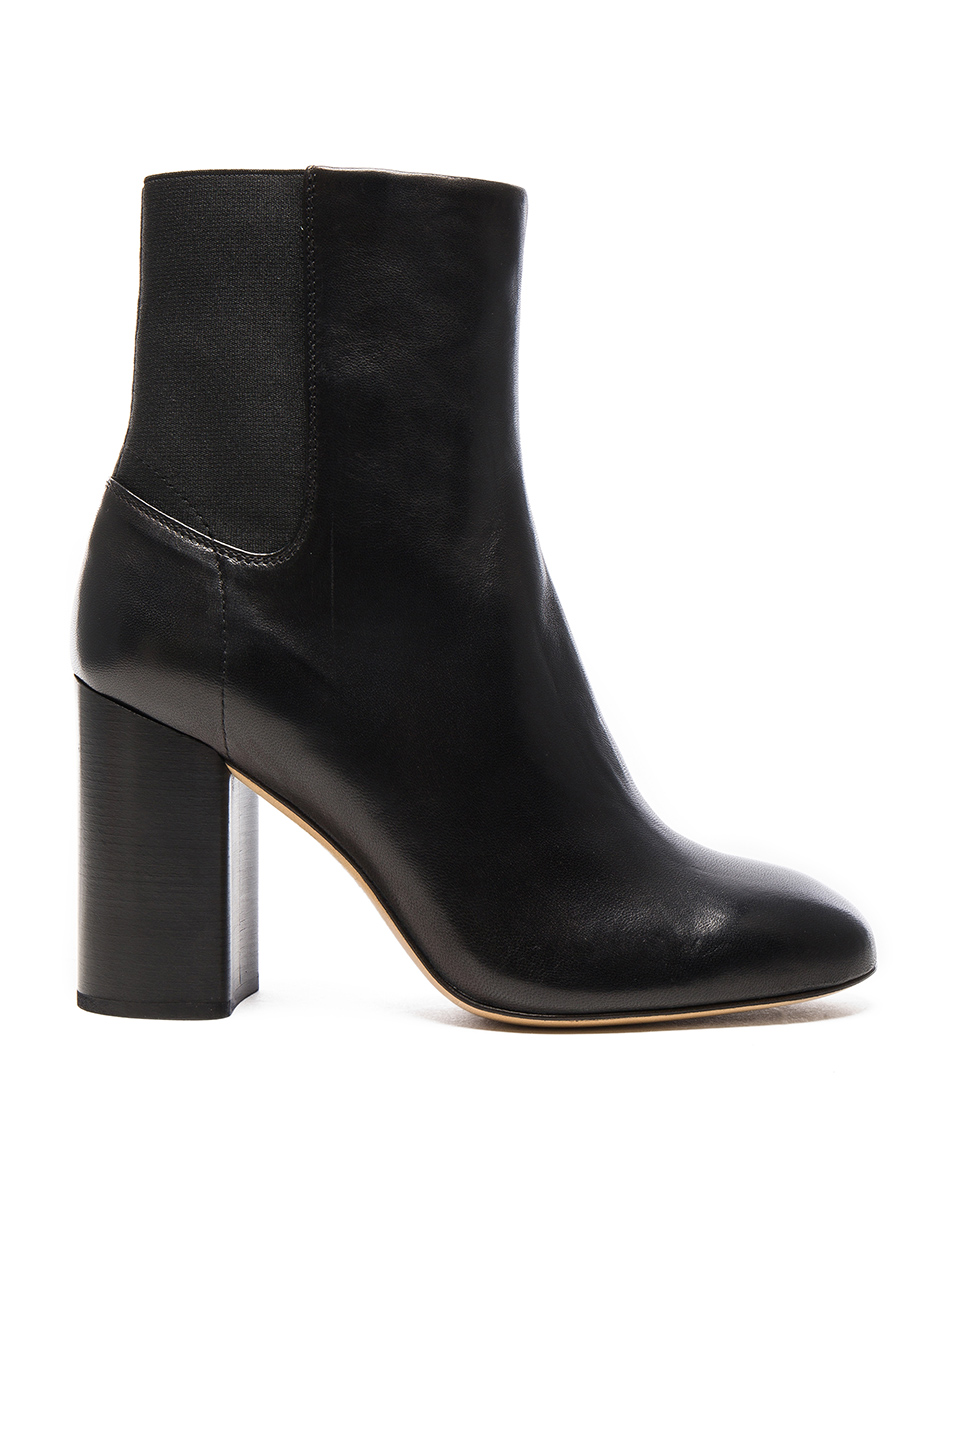 Agnes Leather Block Heel Booties in Black